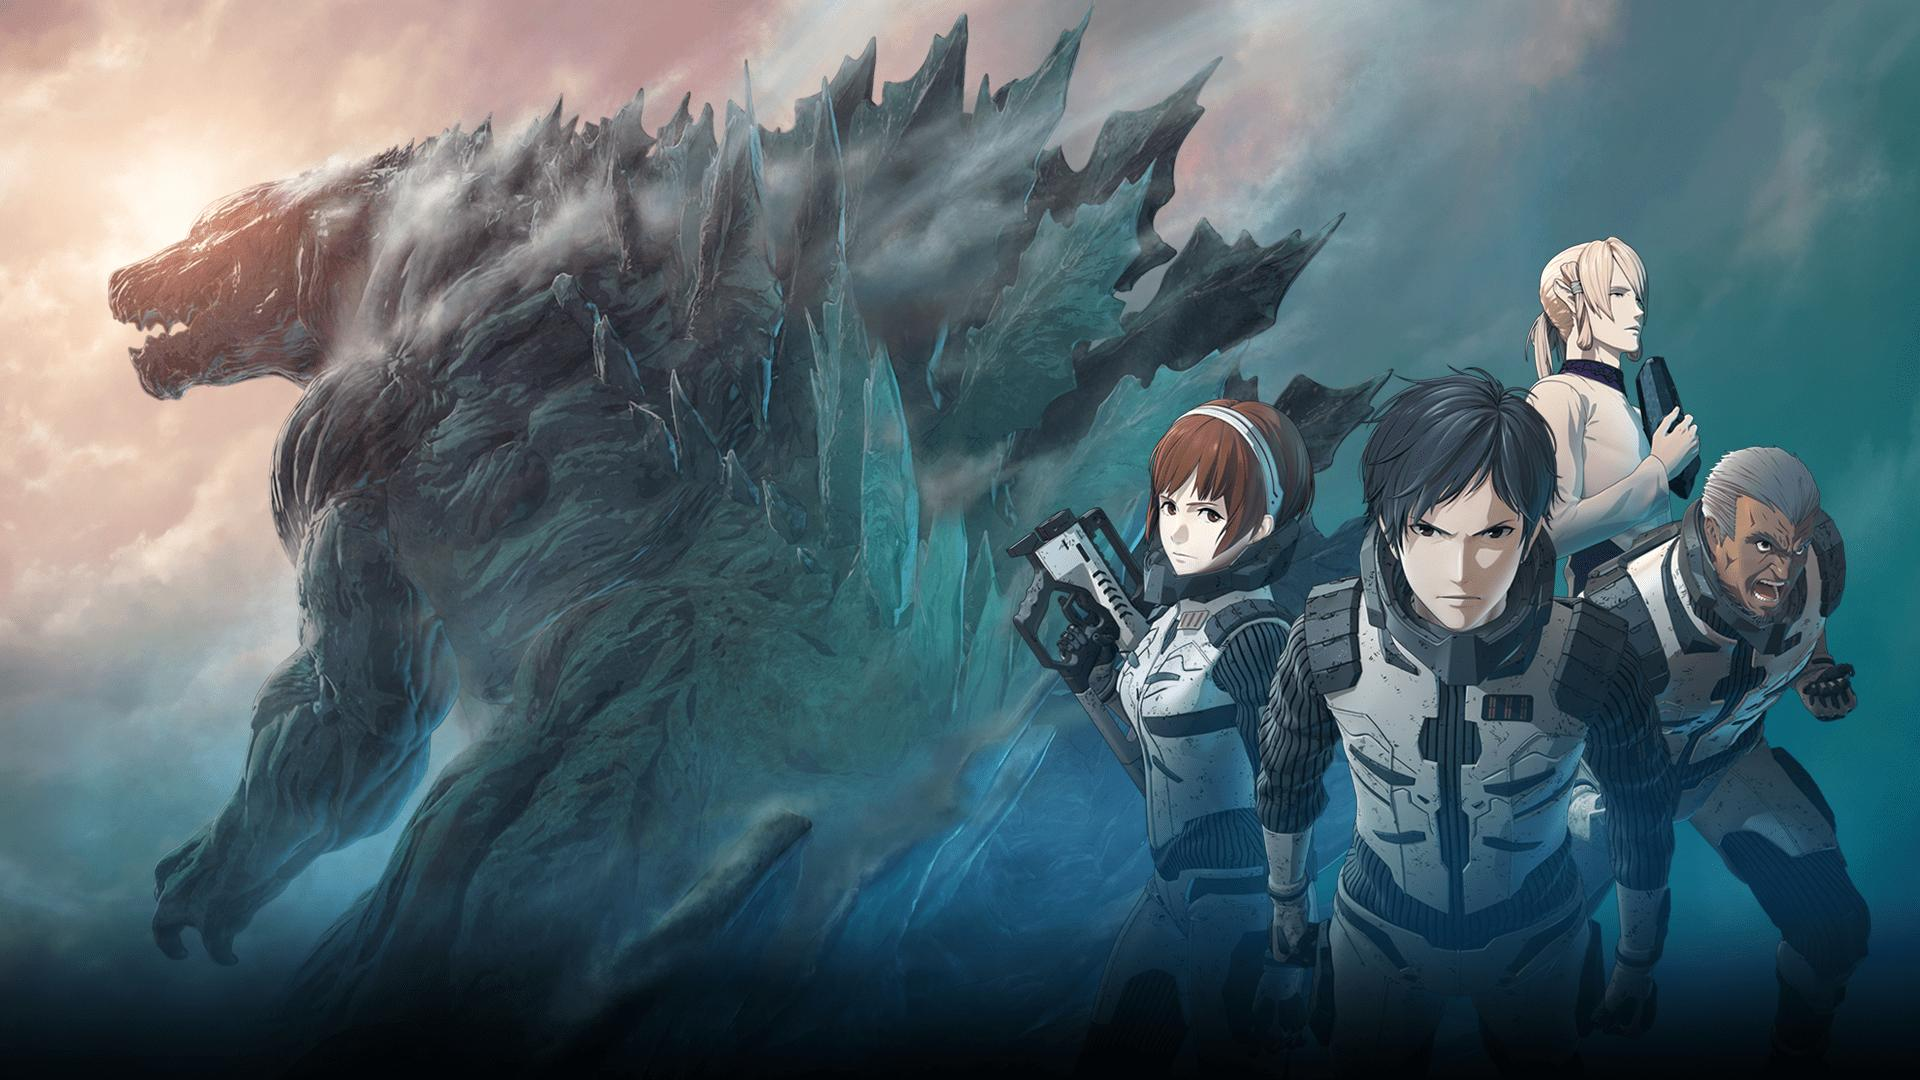 Fondos De Godzilla Anime Hd For Android Apk Download